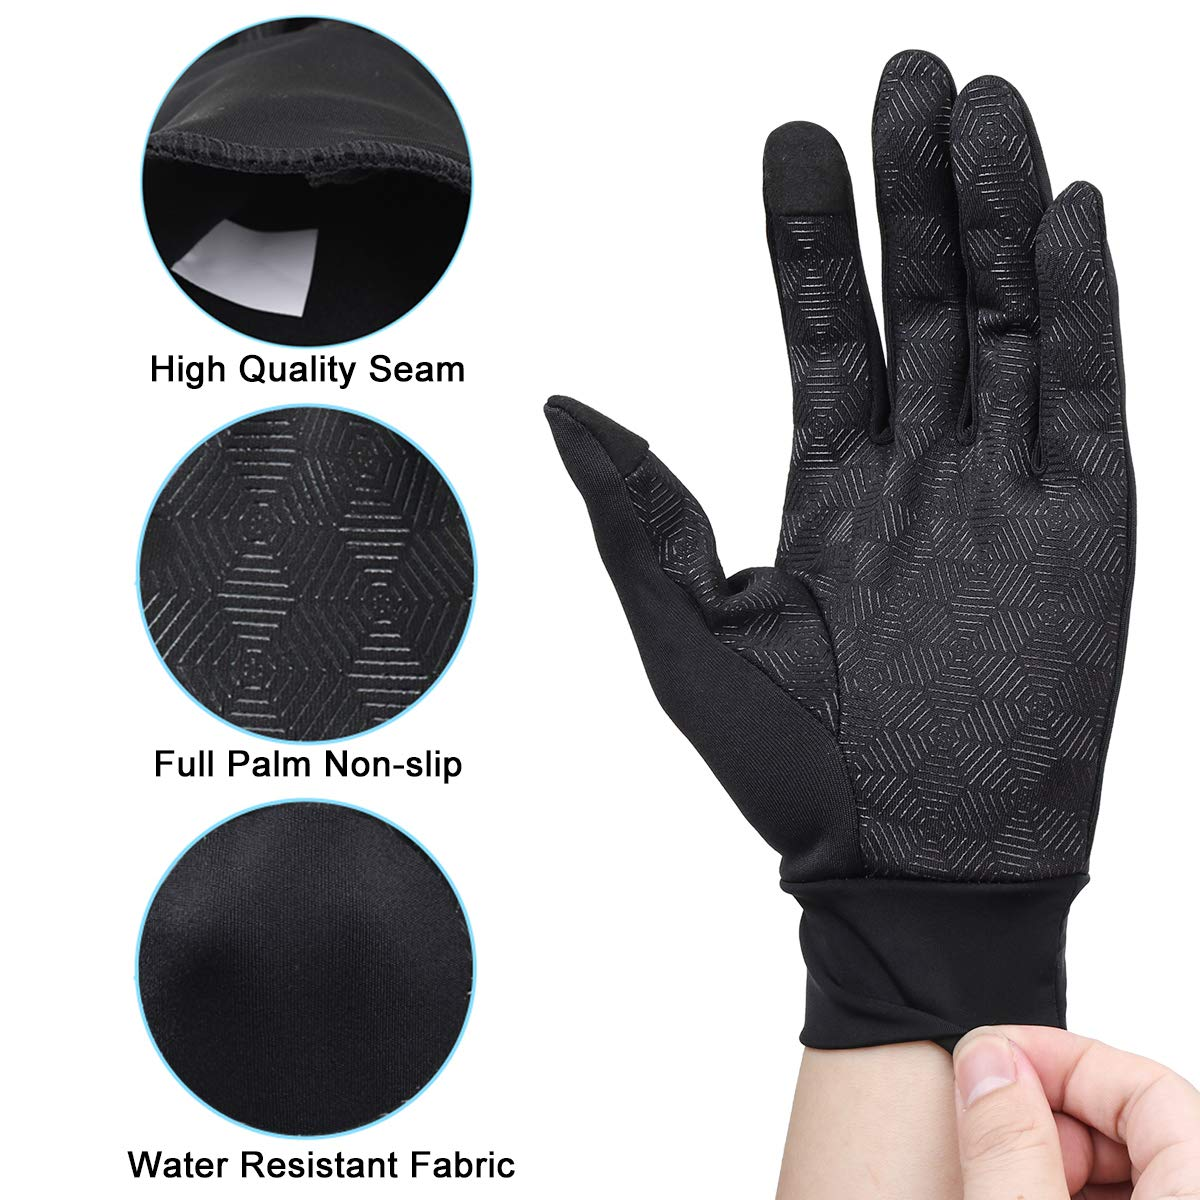 Winter Gloves,Touch Gloves Screen Touch Gloves Touch Screen Gloves Texting Glvoes Running Gloves Cycling Gloves Driving Gloves for Men and Women by FTEOX (Black-Medium)